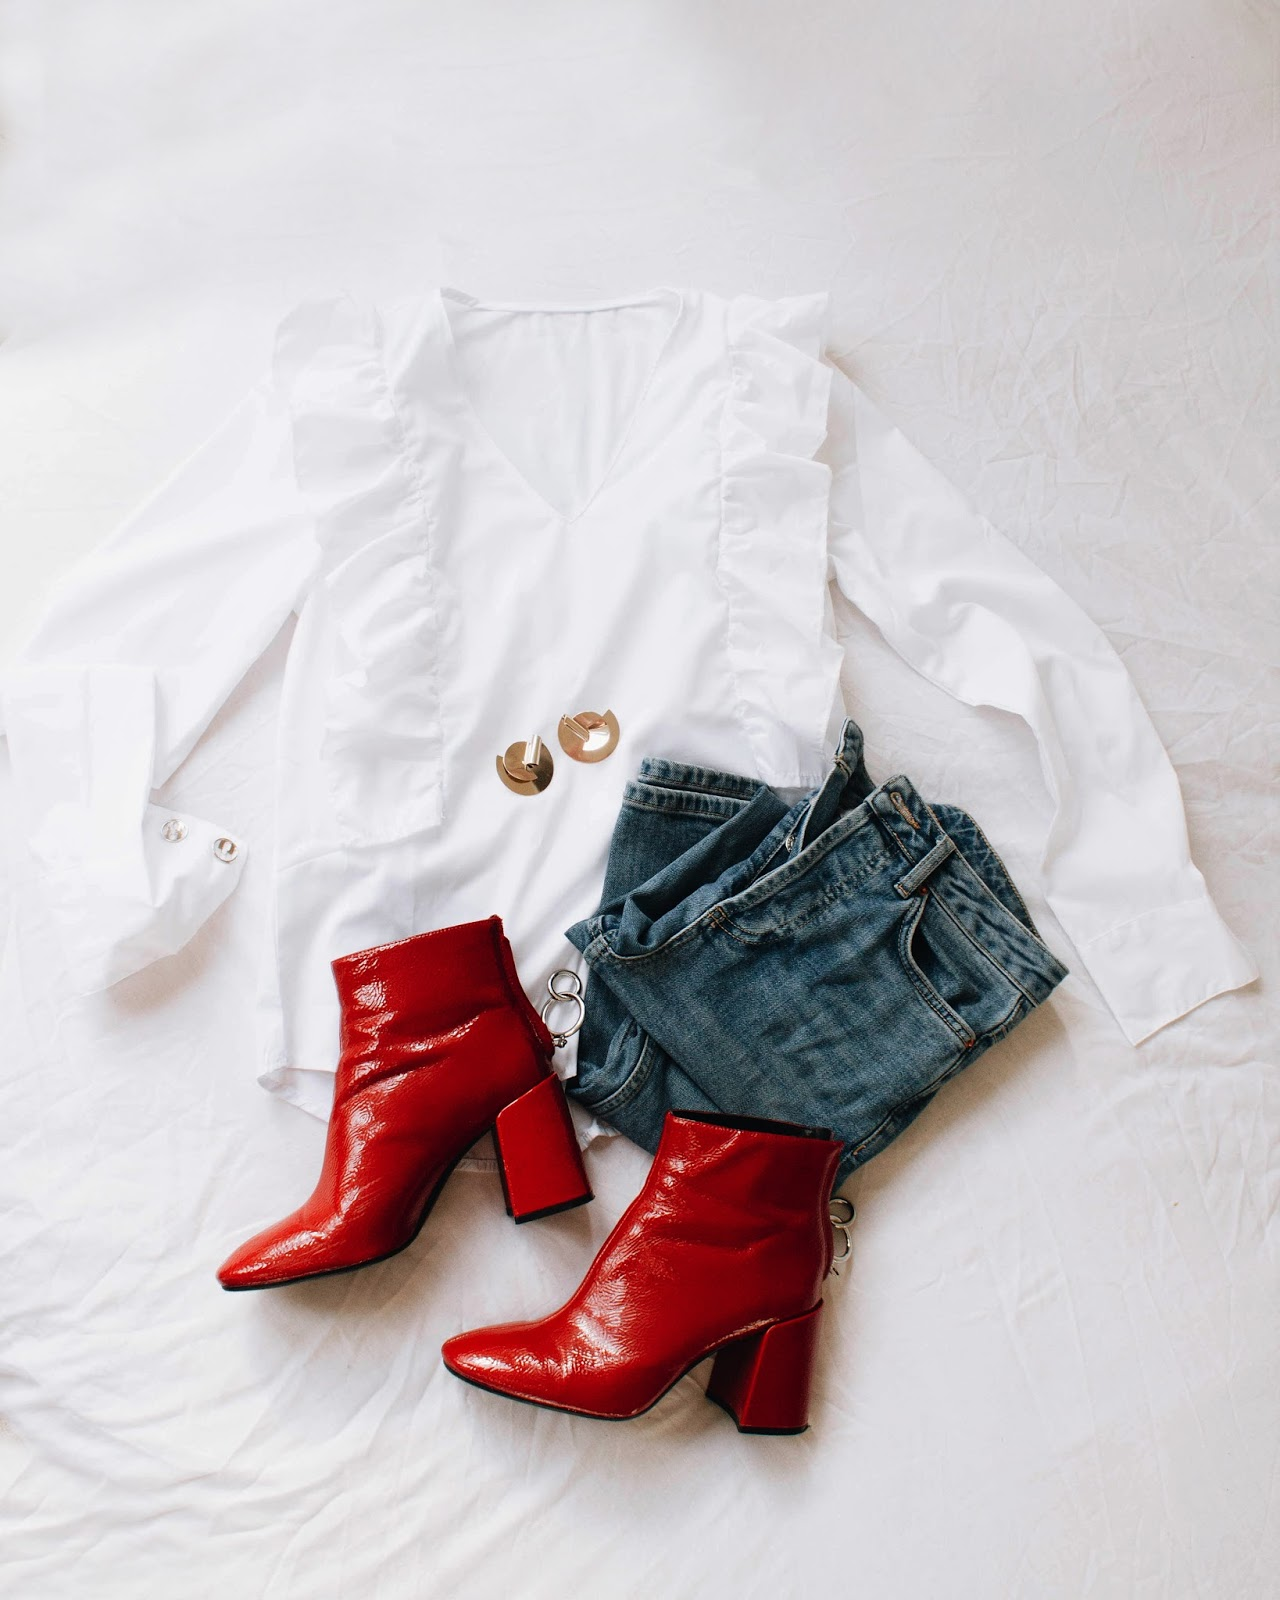 ruffle shirt, red zara boots, red boots, gold statement earrings, denim, cool casual outfit